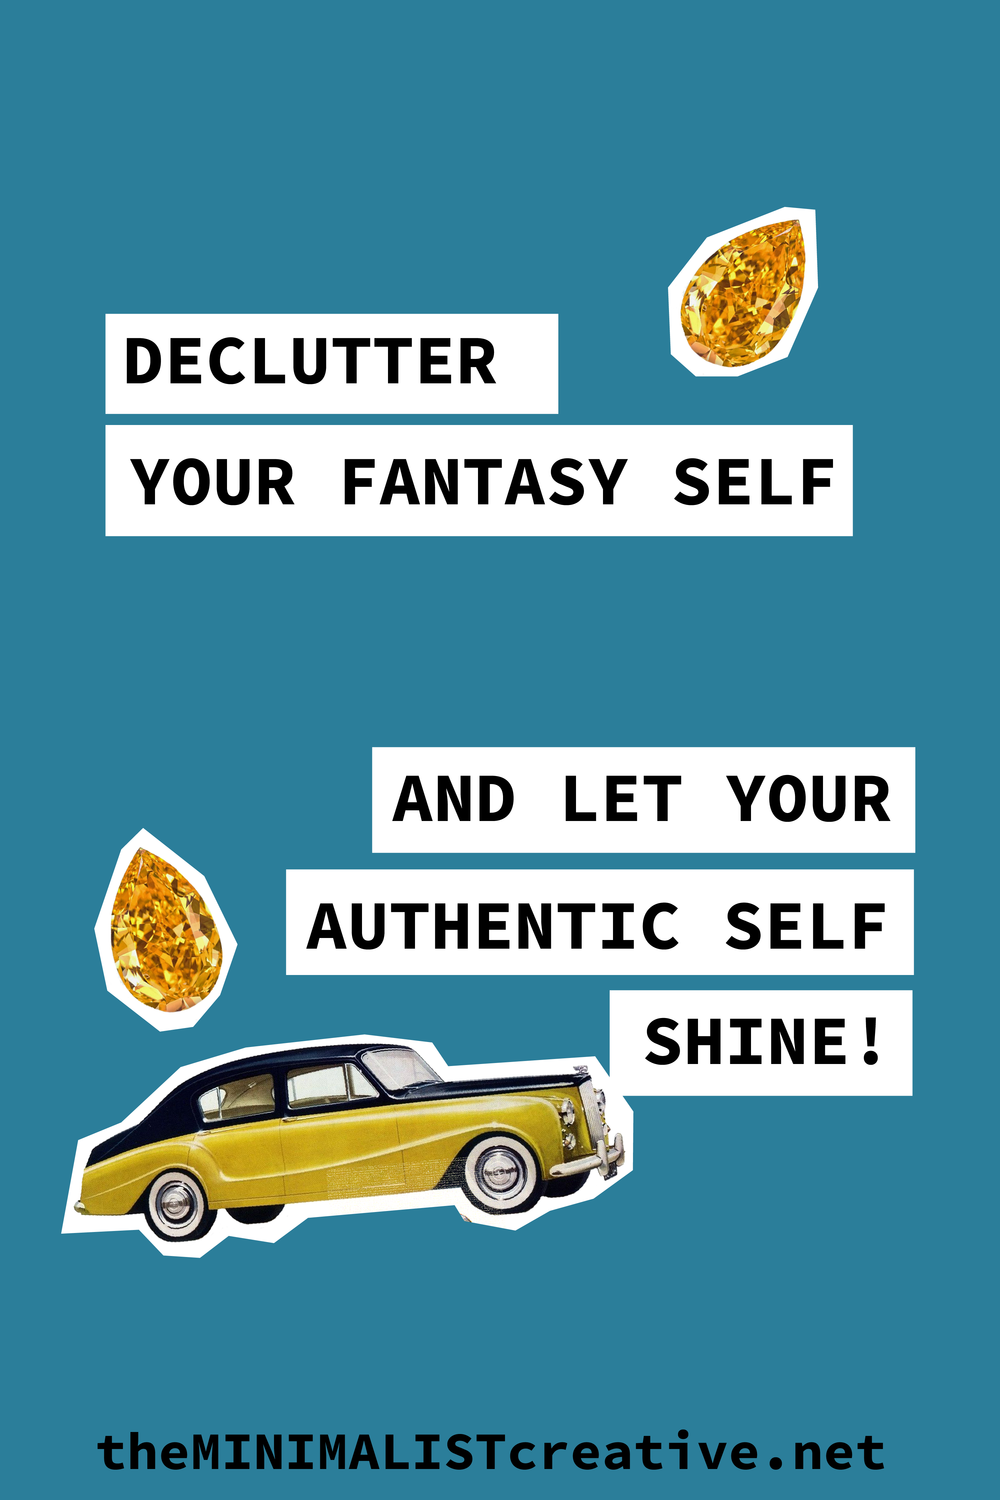 Declutter Your Fantasy Self And Let Your Authentic Self Shine!